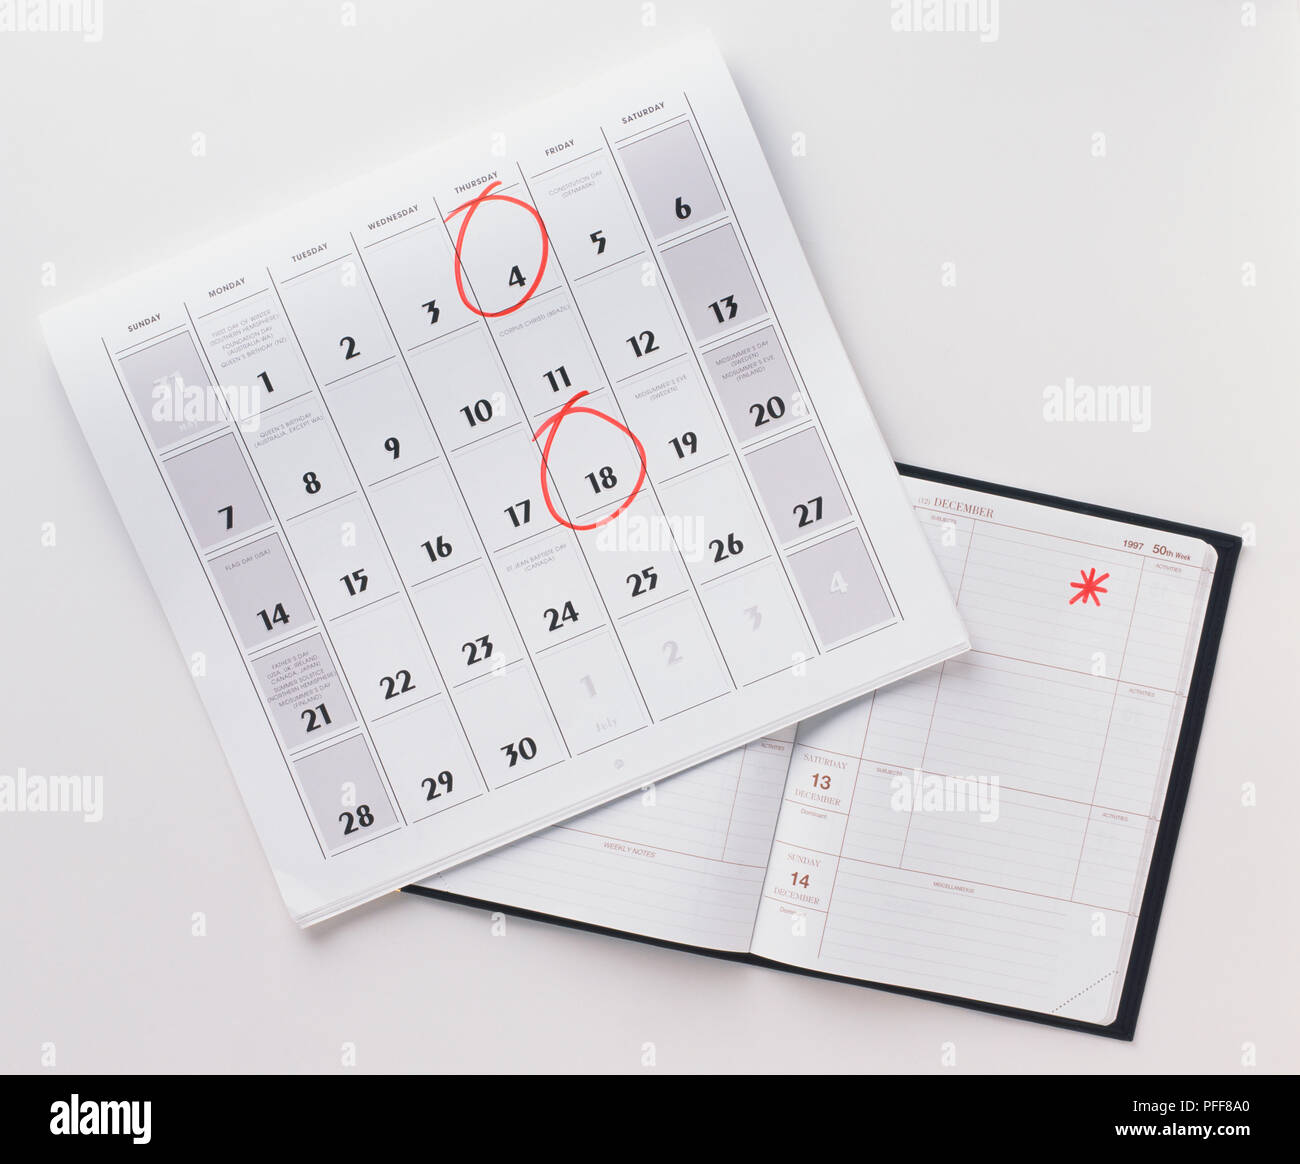 Calendar page and open diary, with specific days marked in red. - Stock Image